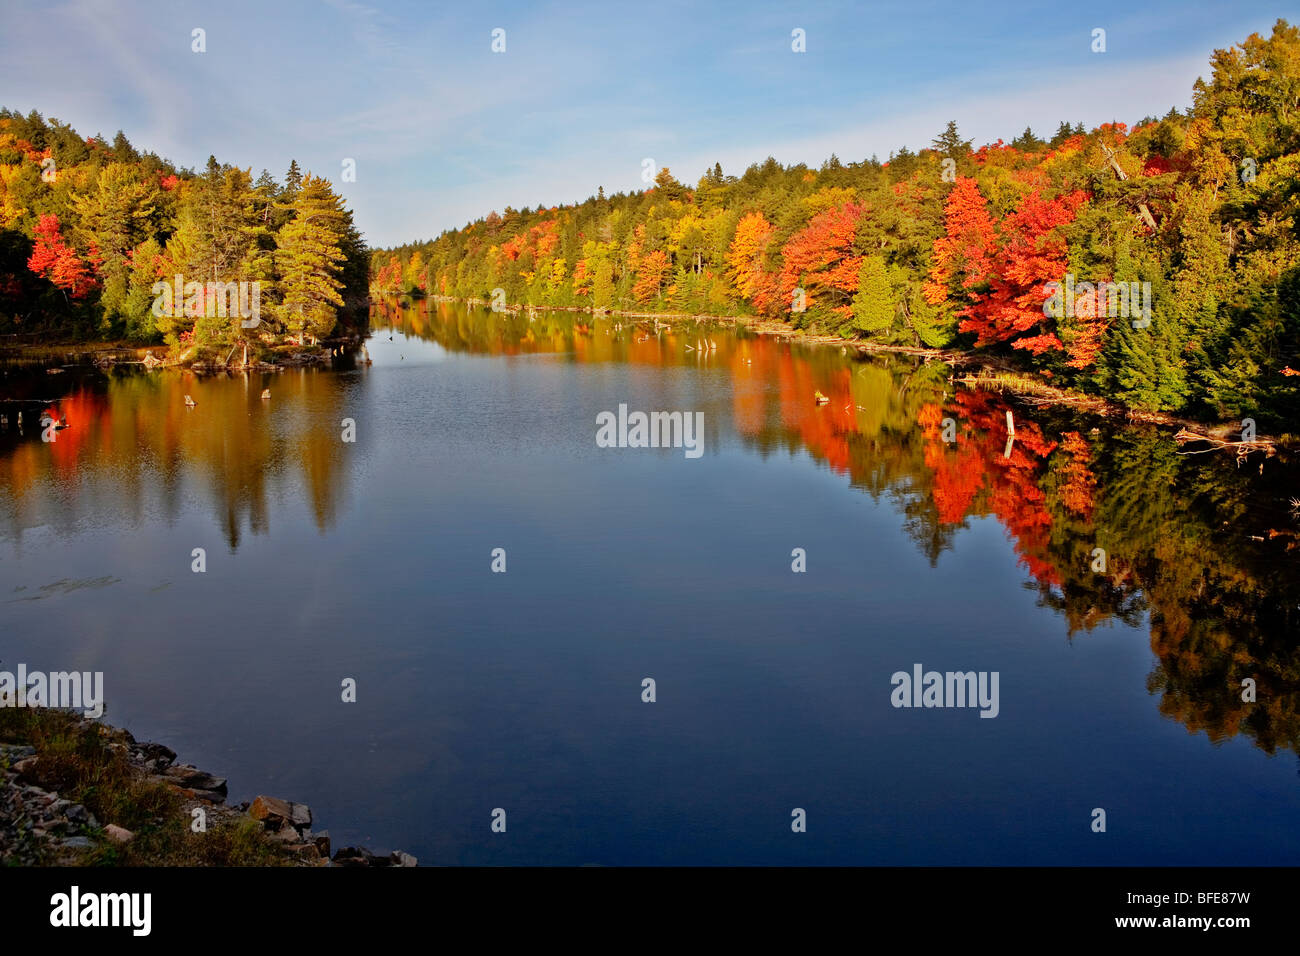 Water reflections in lake in Algonquin Park in fall, Ontario, Canada - Stock Image